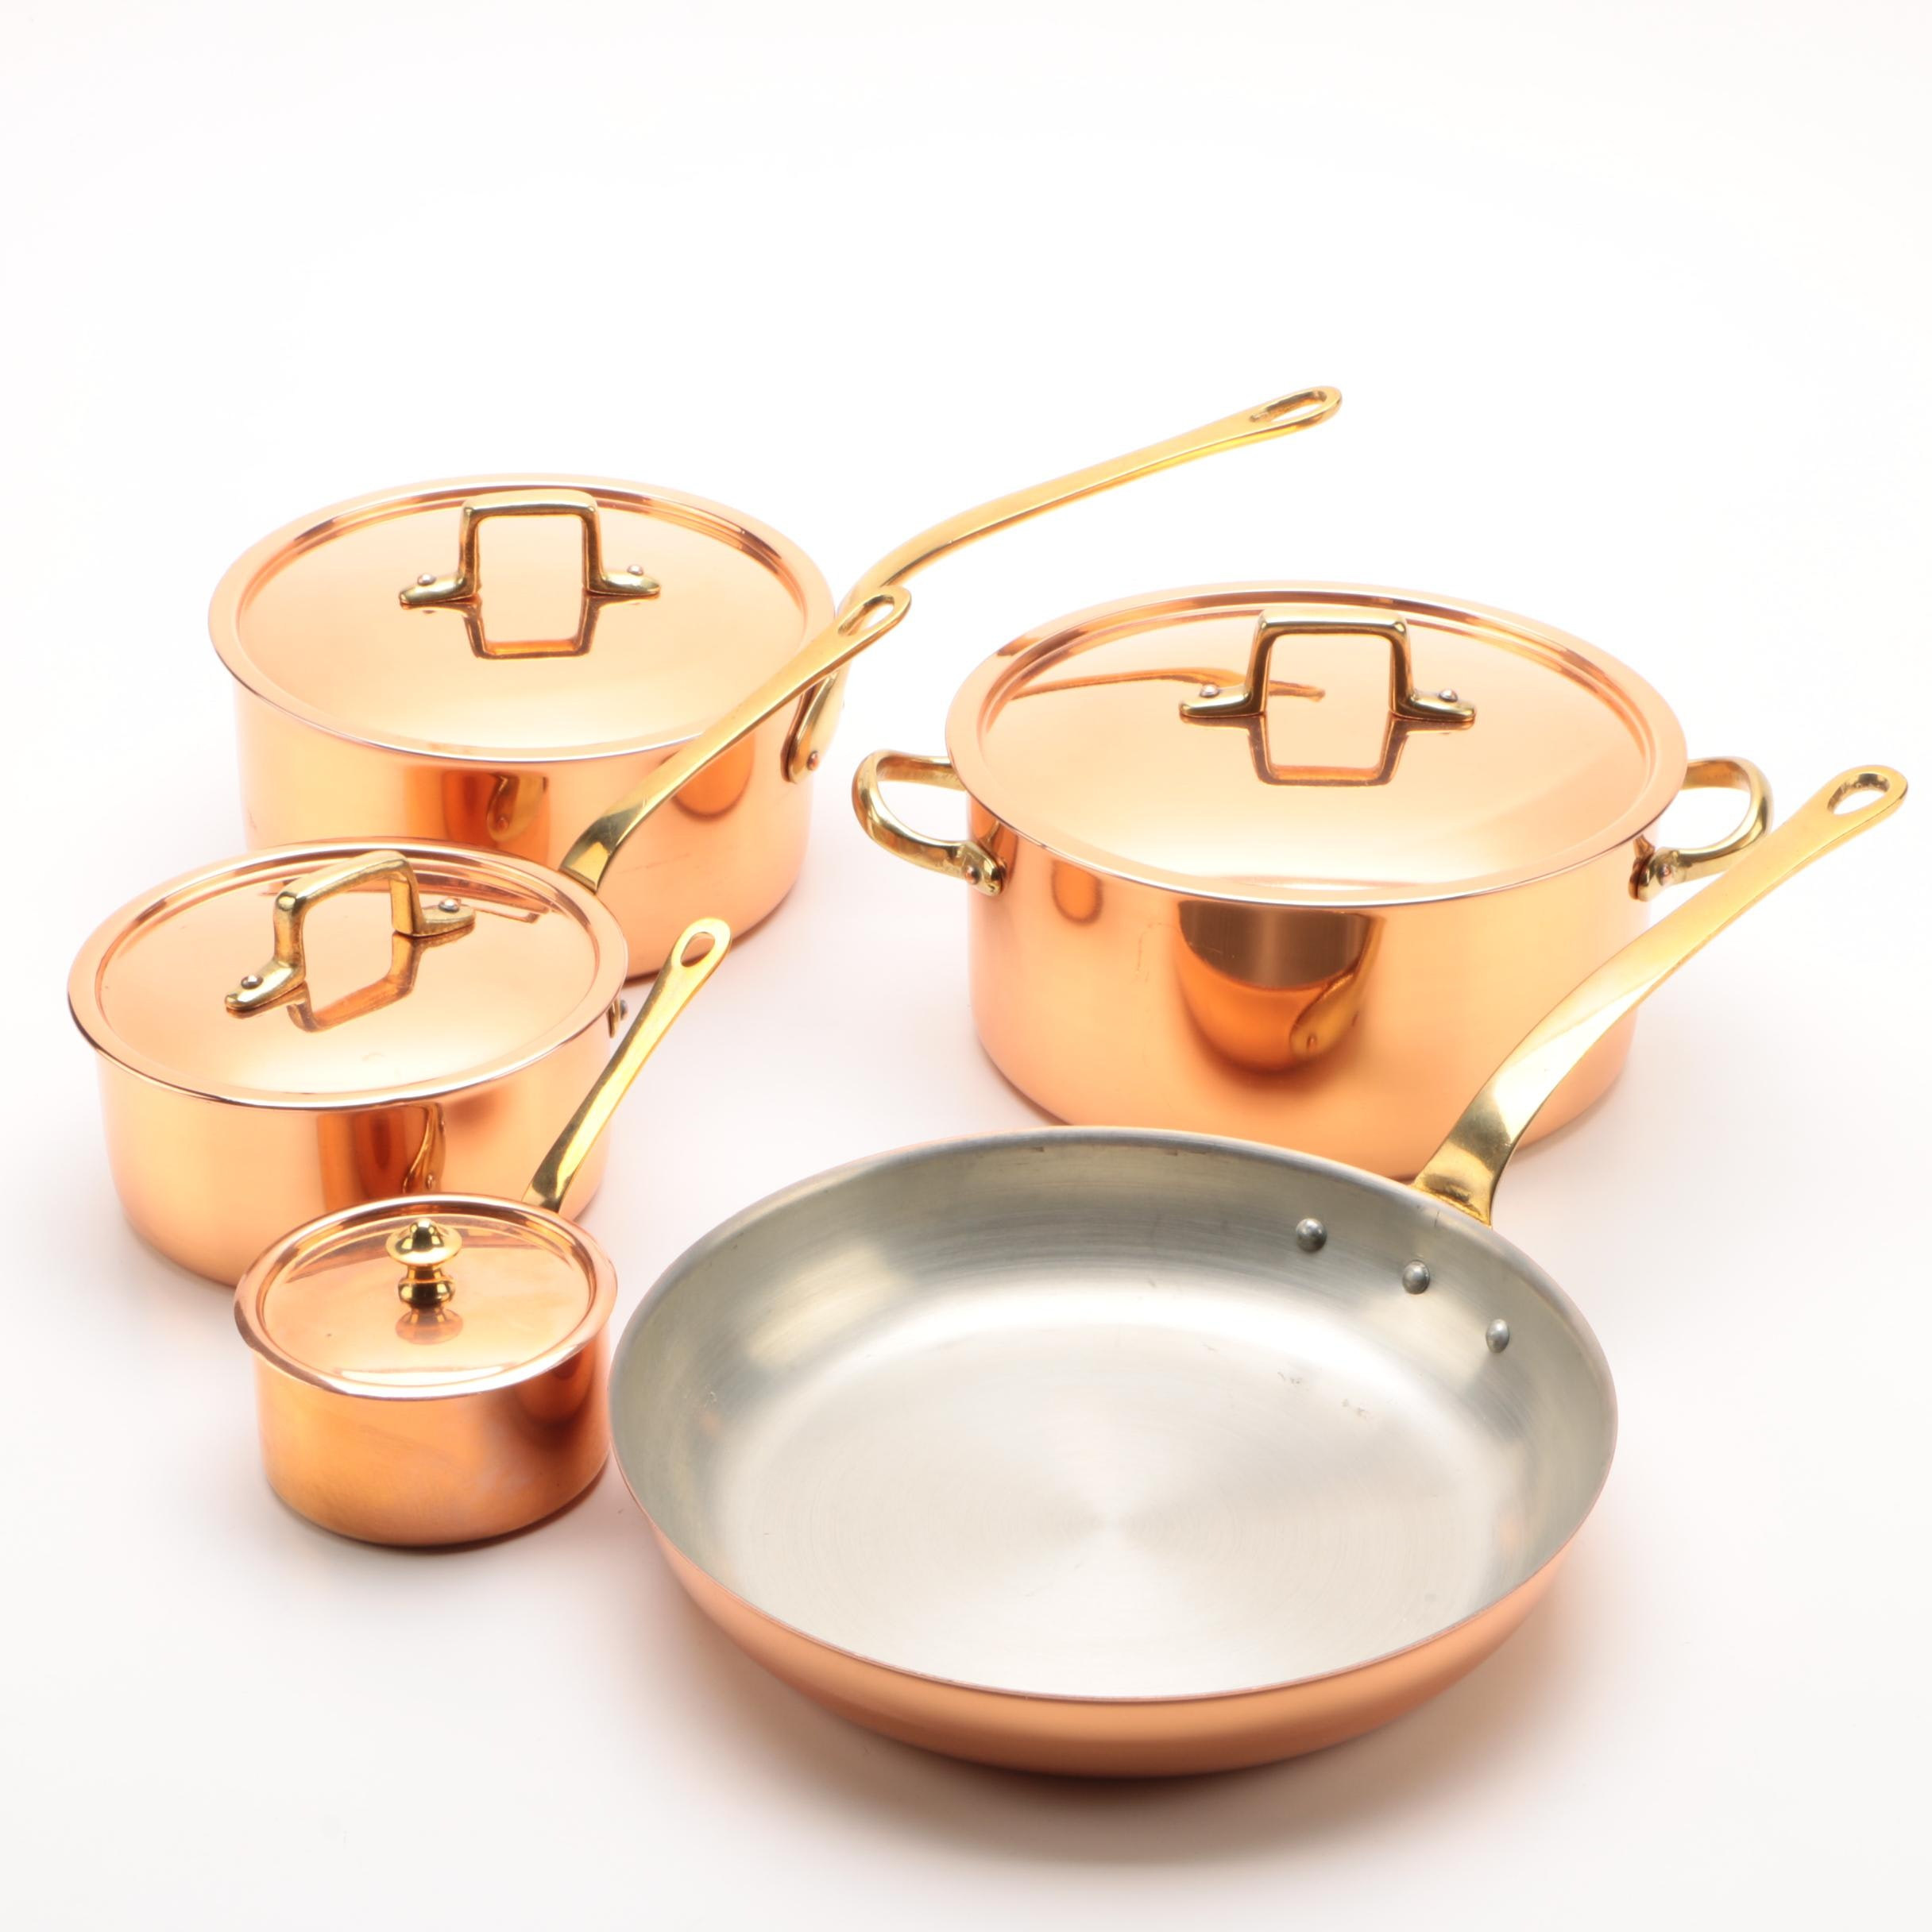 French and Portuguese Handmade Copper Pots and Pans